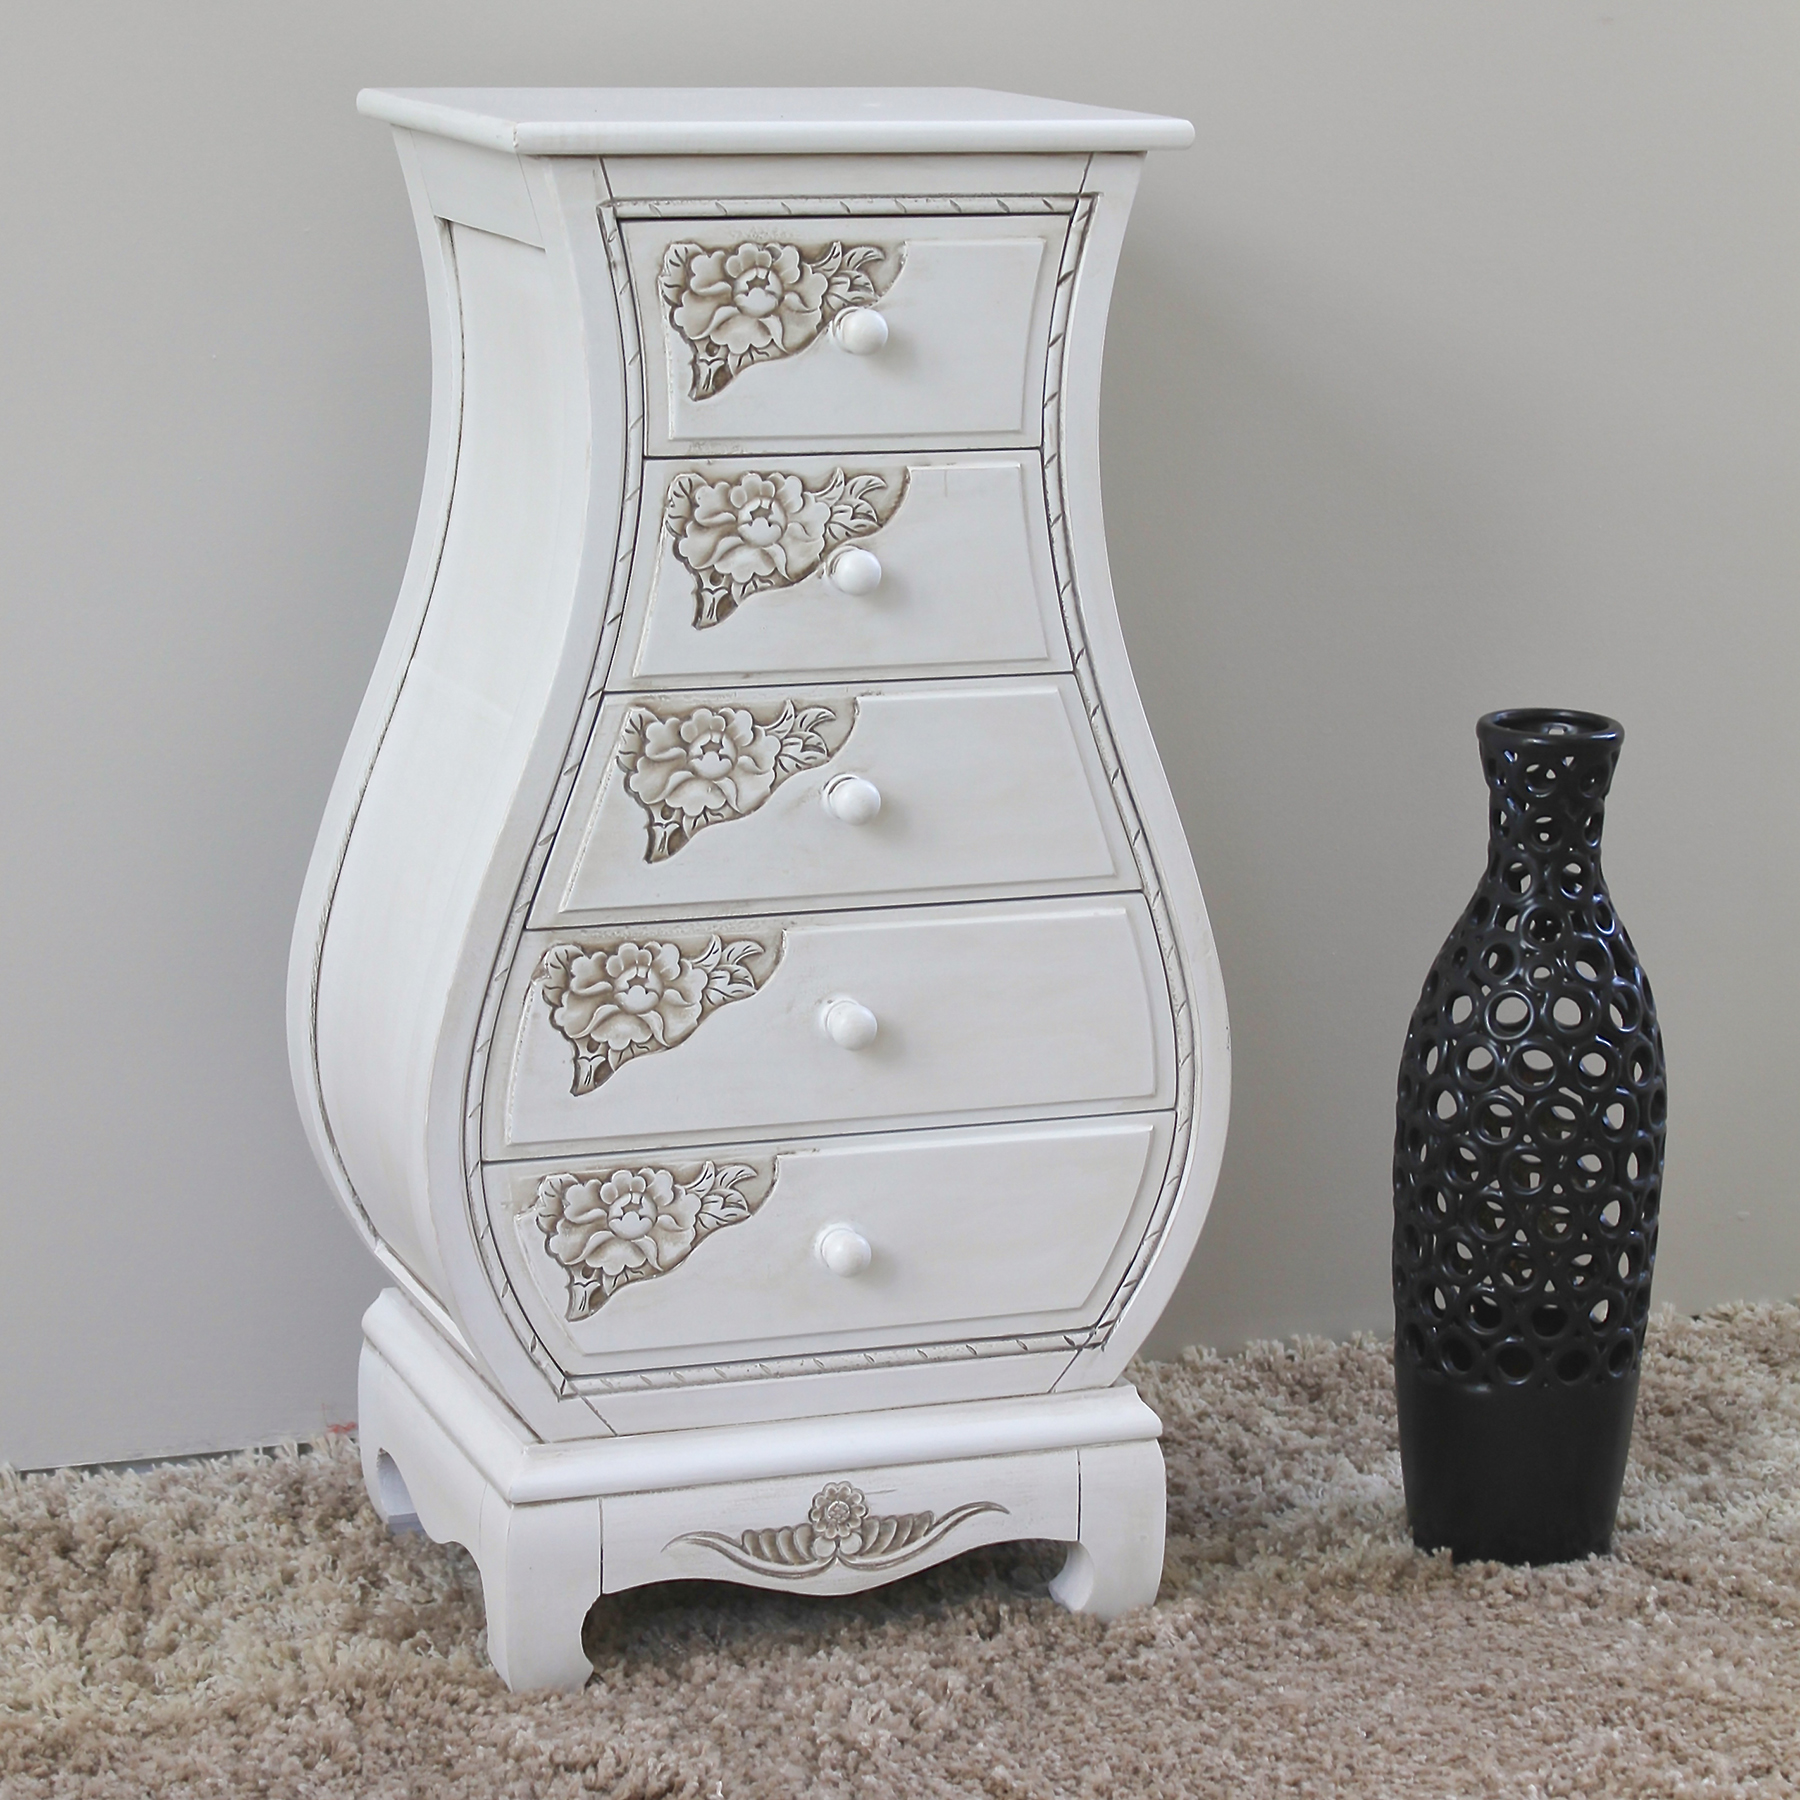 kitchen bistro sets franke faucets antique white bombay chest - 5 drawers | dcg stores